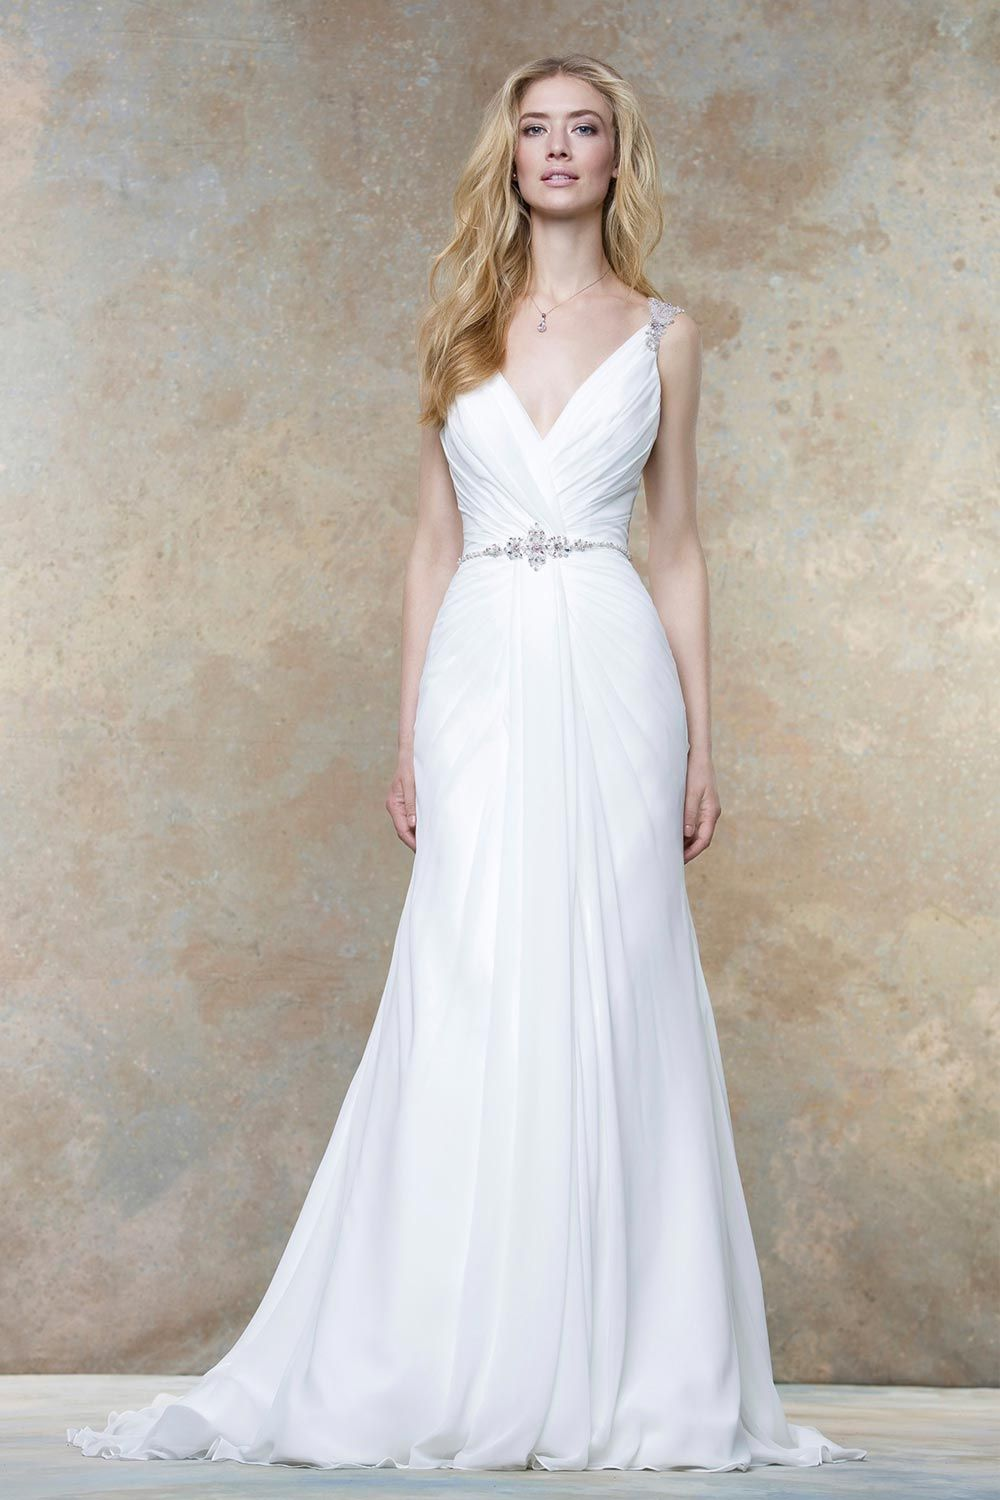 D Wedding Dress From Ellis Bridals